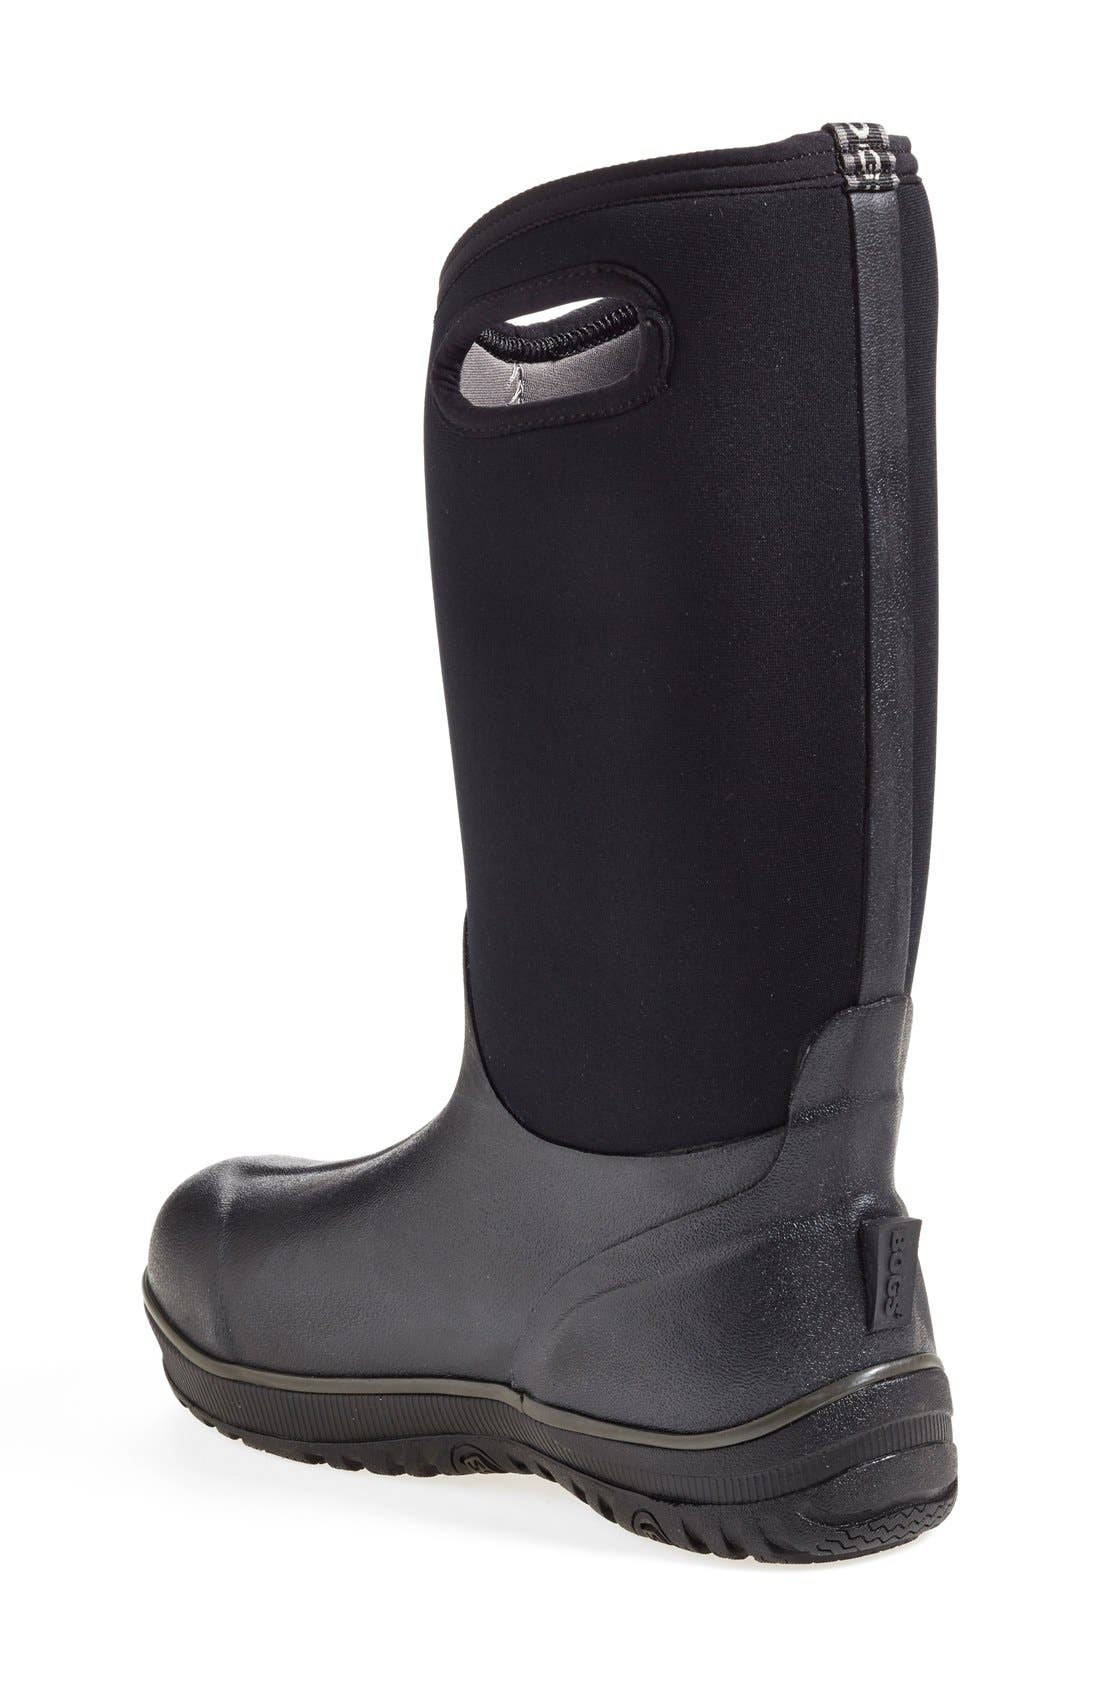 'Classic' Ultra High Waterproof Snow Boot with Cutout Handles,                             Alternate thumbnail 2, color,                             Black